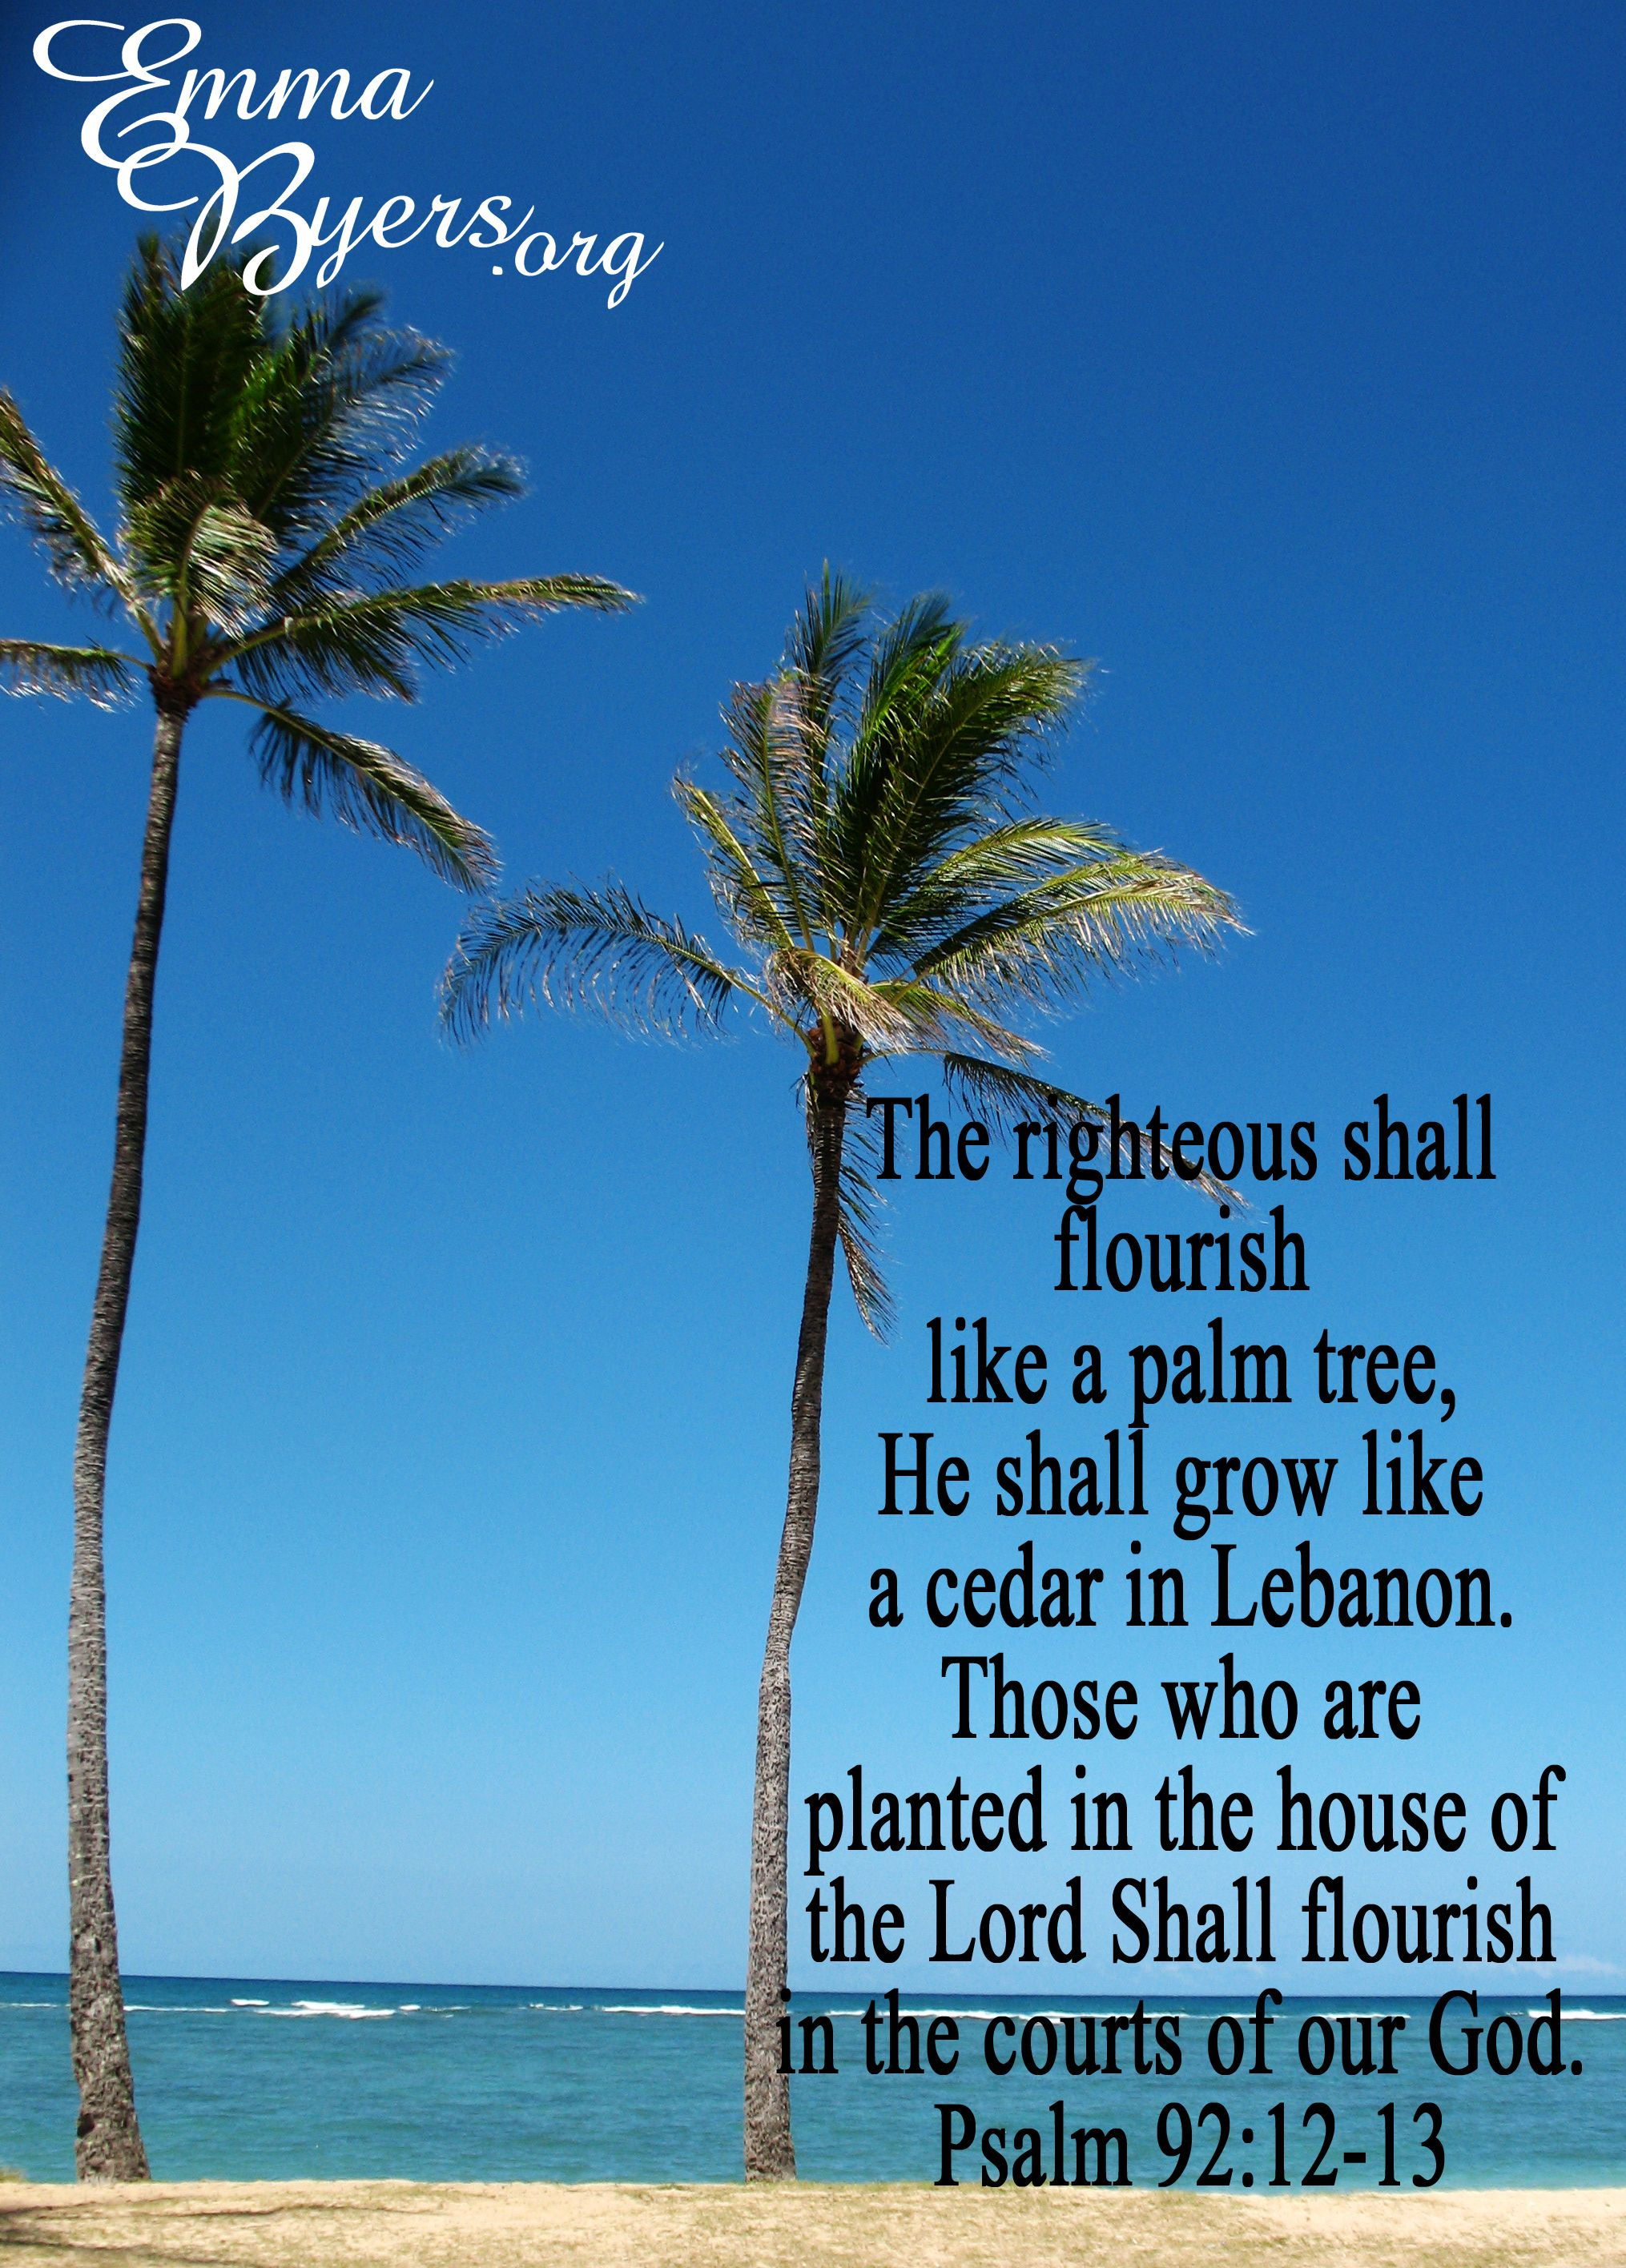 Psalm Hawaii, Palm Trees, Bible Verse, Planted In The House Of The Lord